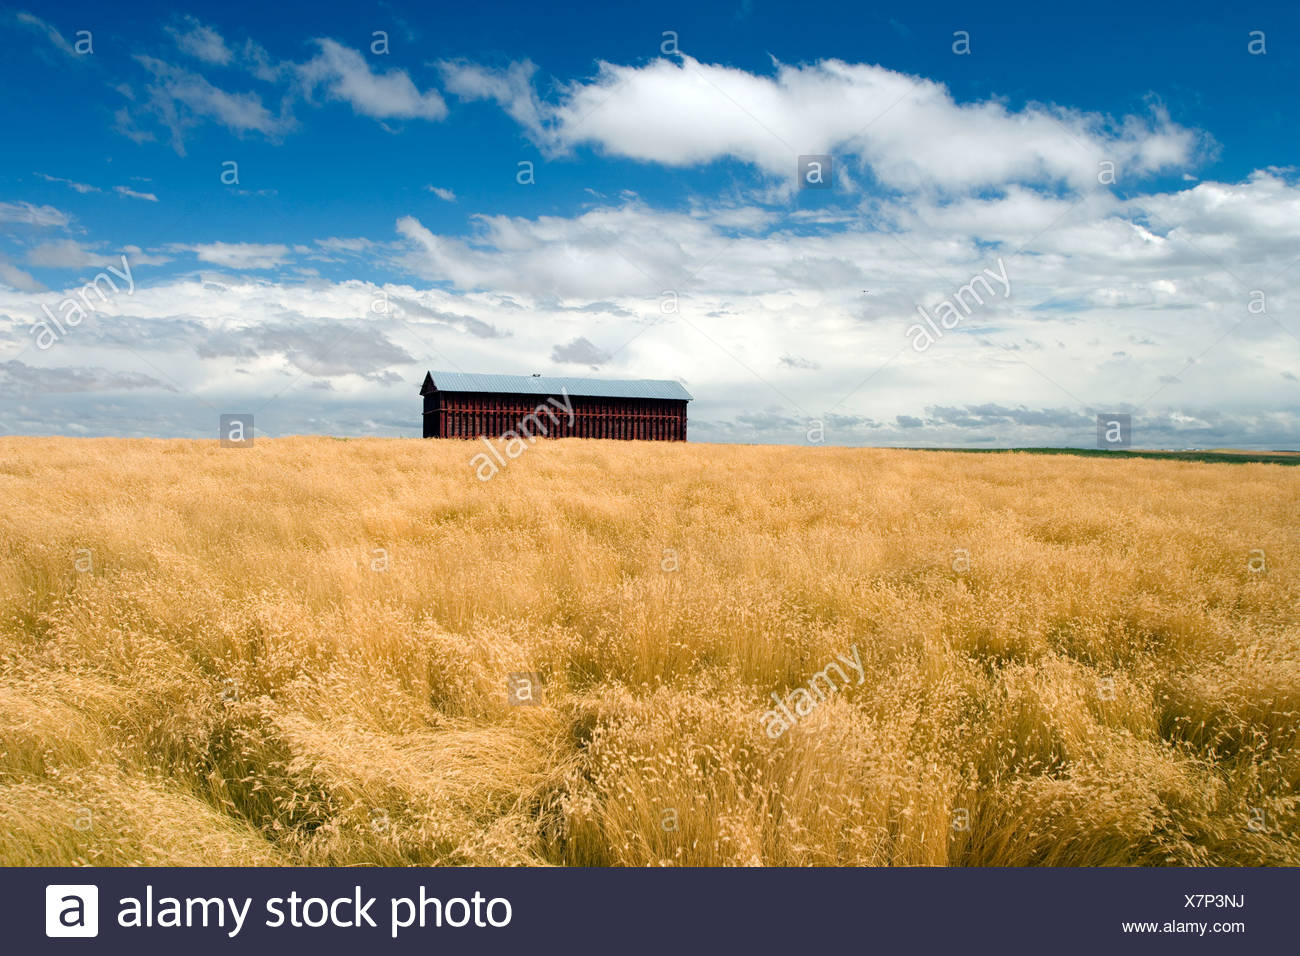 Barn in grainfield near Crowfoot Ferry, Alberta, Canada, agriculture - Stock Image